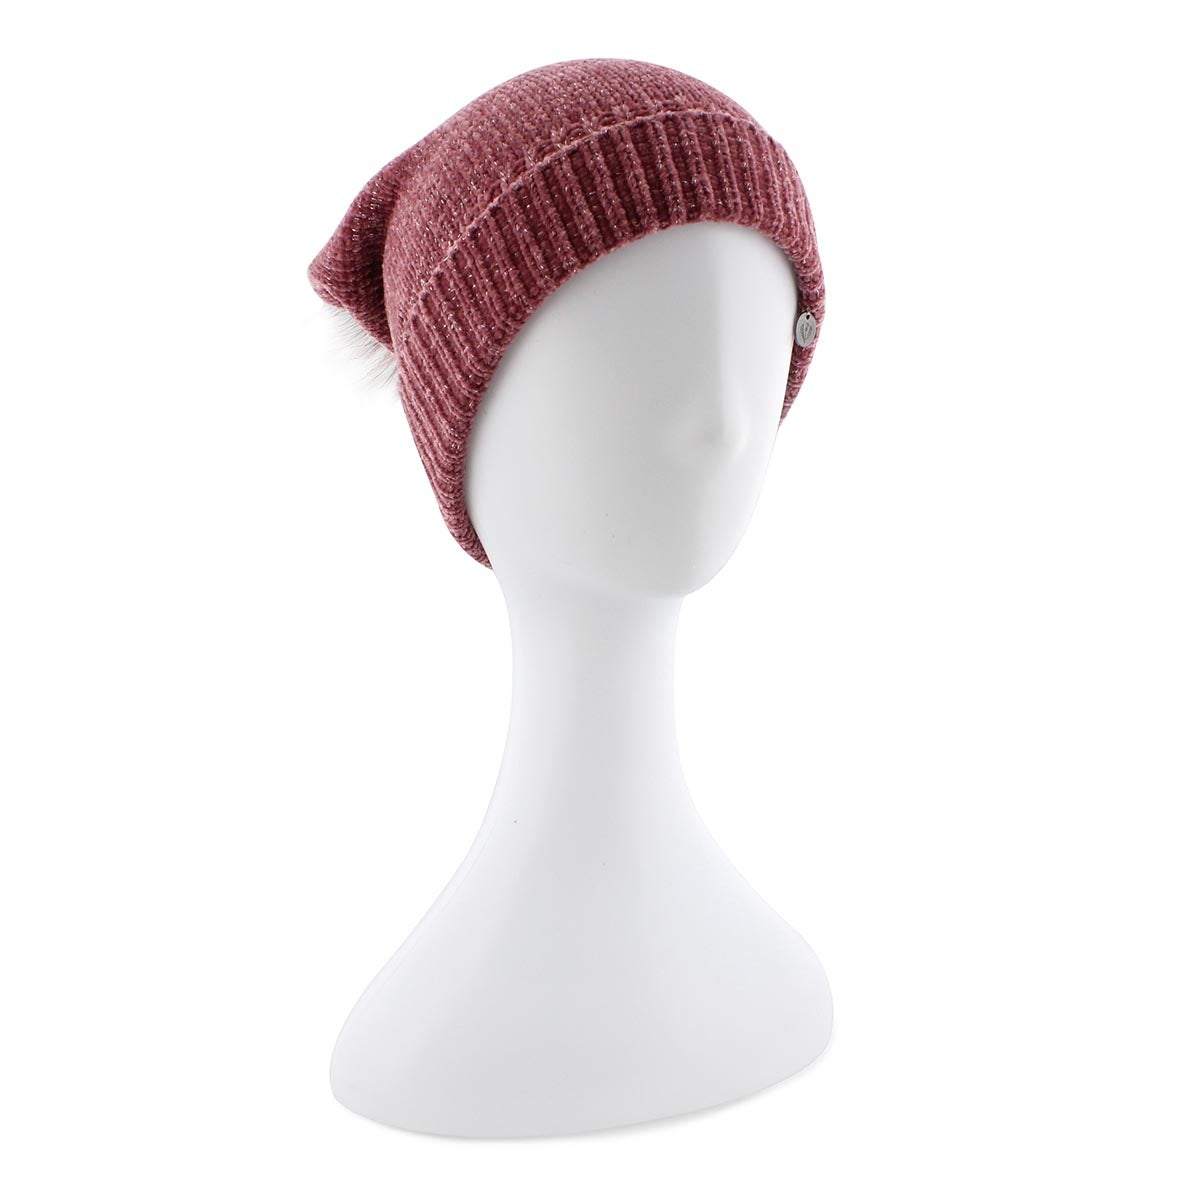 Lds Chenille Metallic Fur Pom plum hat